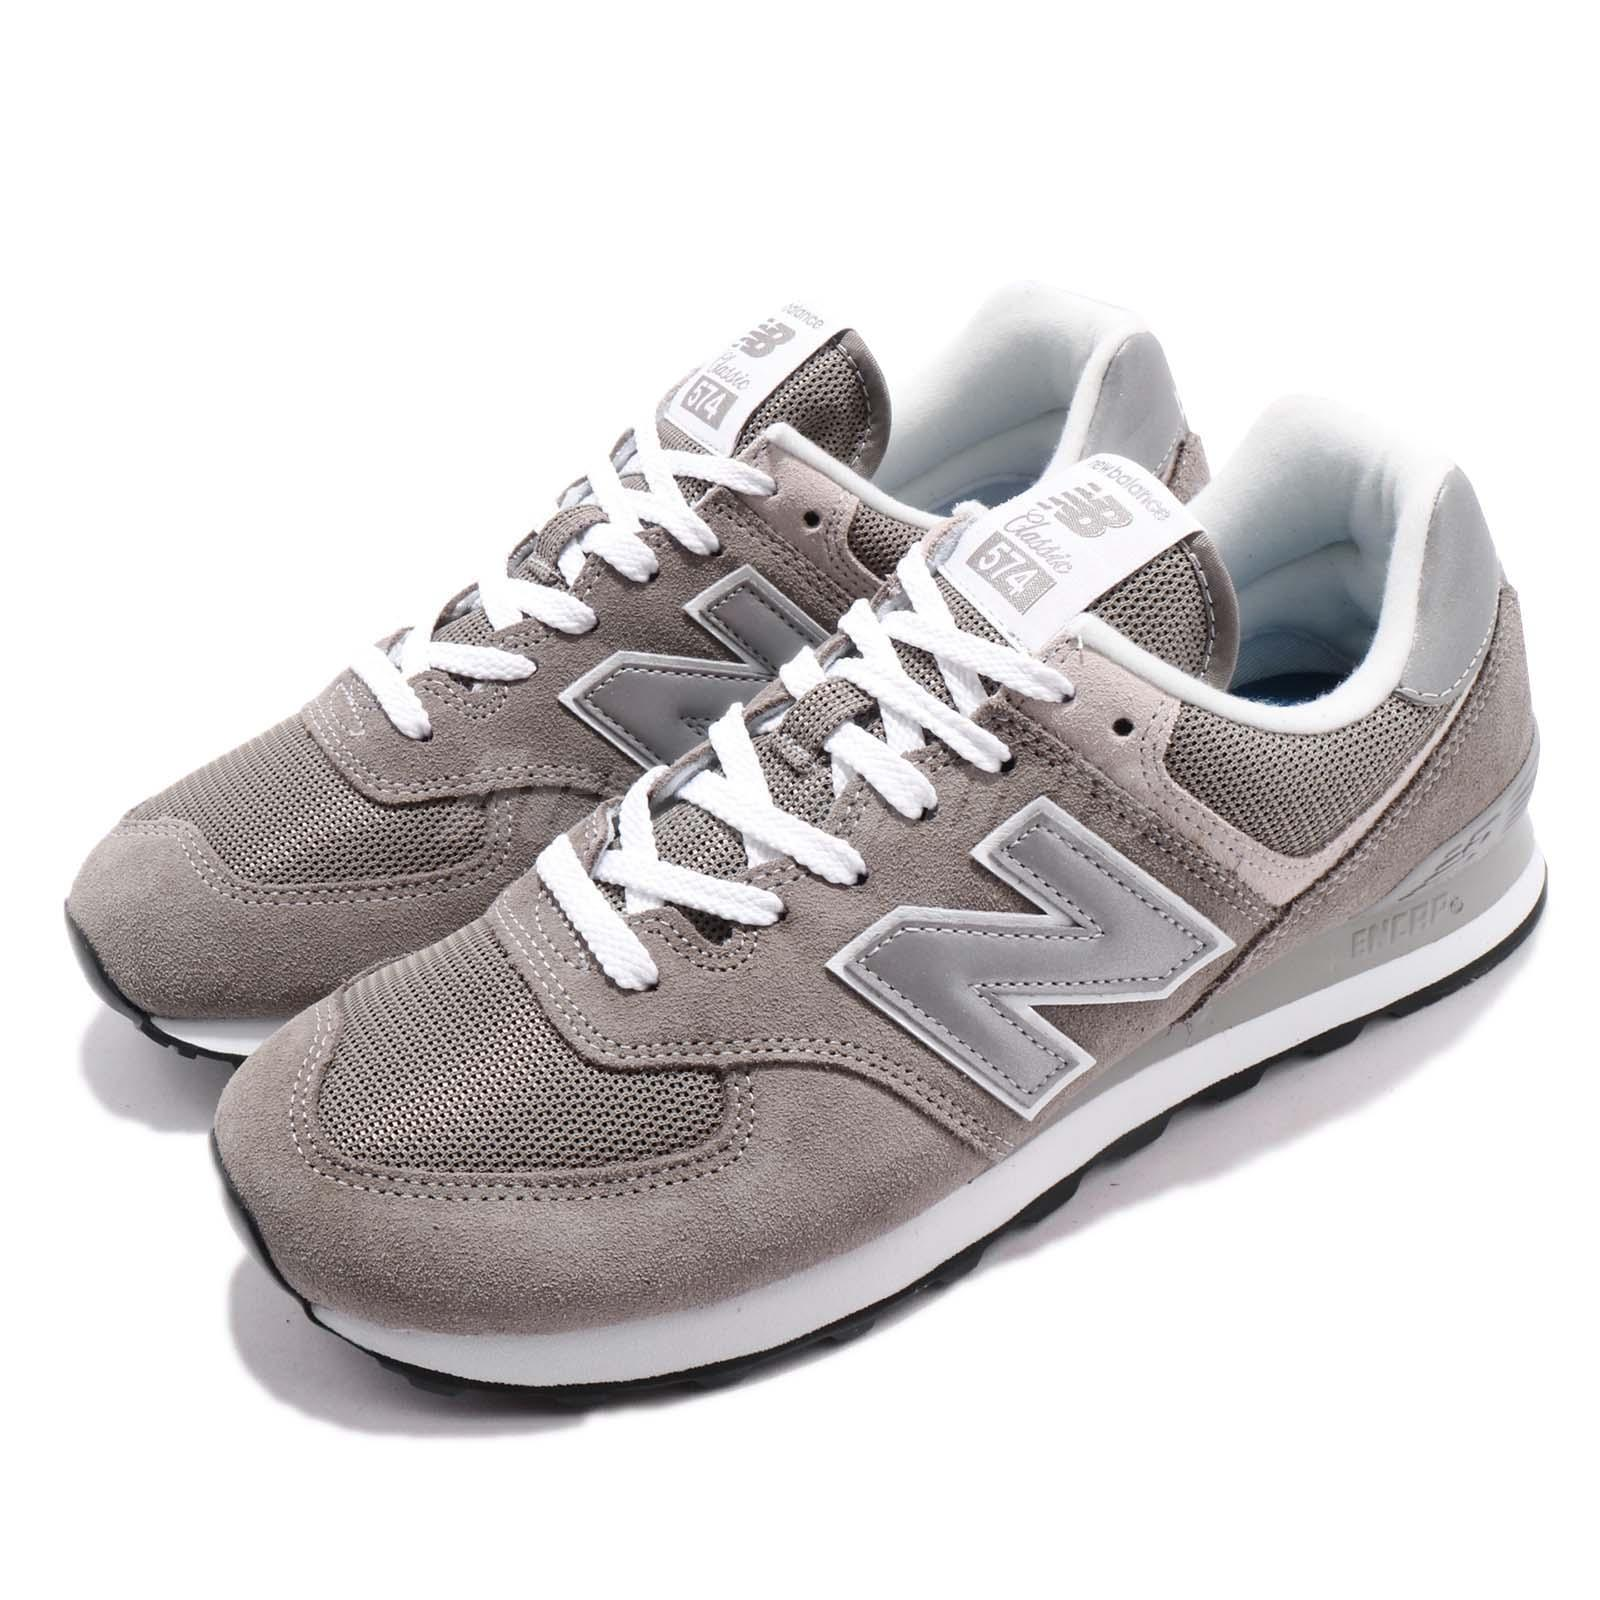 huge selection of 2f8c3 7a9cb Details about New Balance WL574EG B 574 Grey White Women Running Shoes  Sneakers WL574EGB